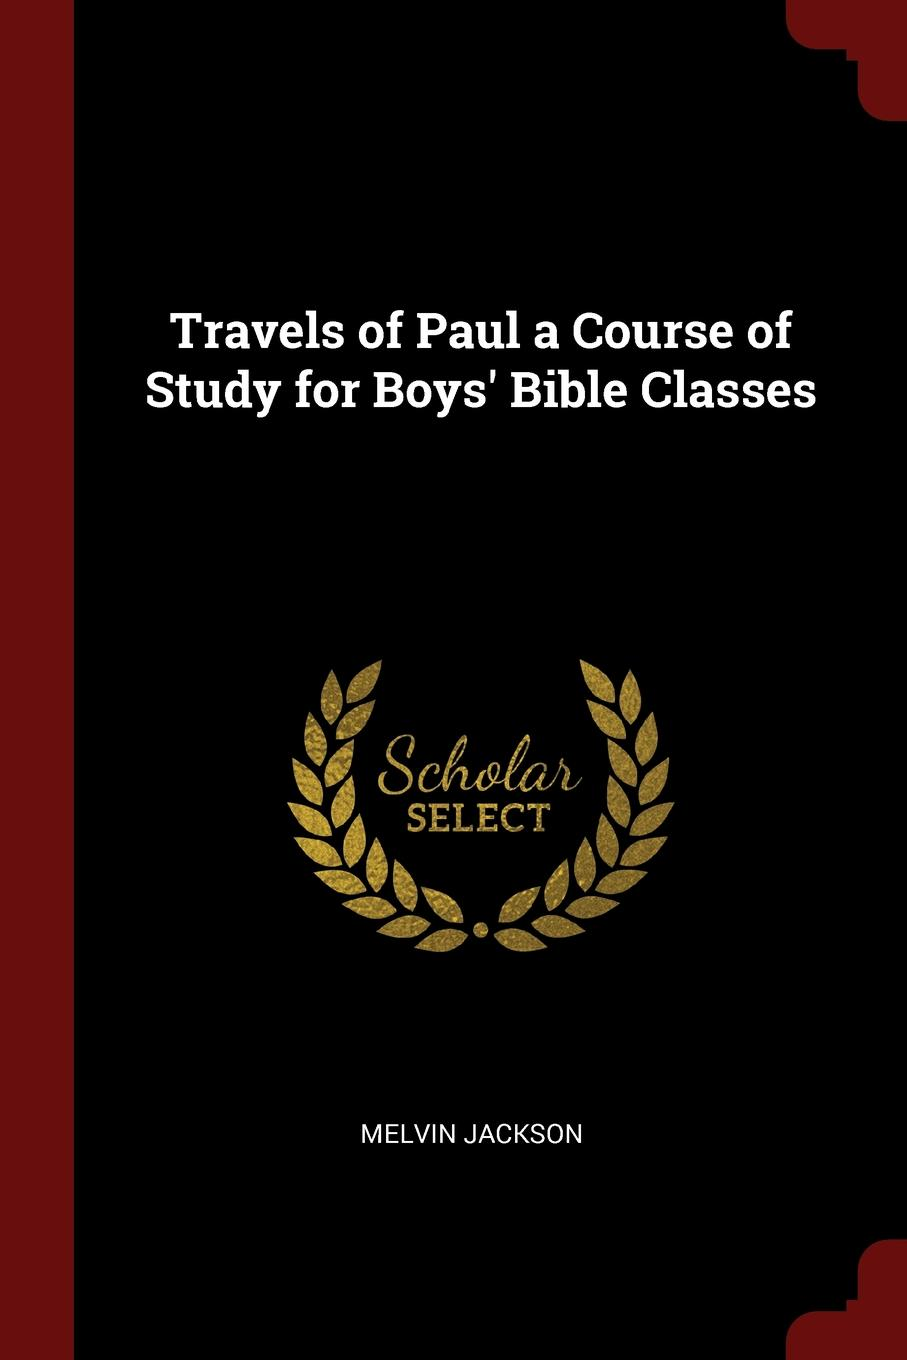 Melvin Jackson Travels of Paul a Course of Study for Boys. Bible Classes